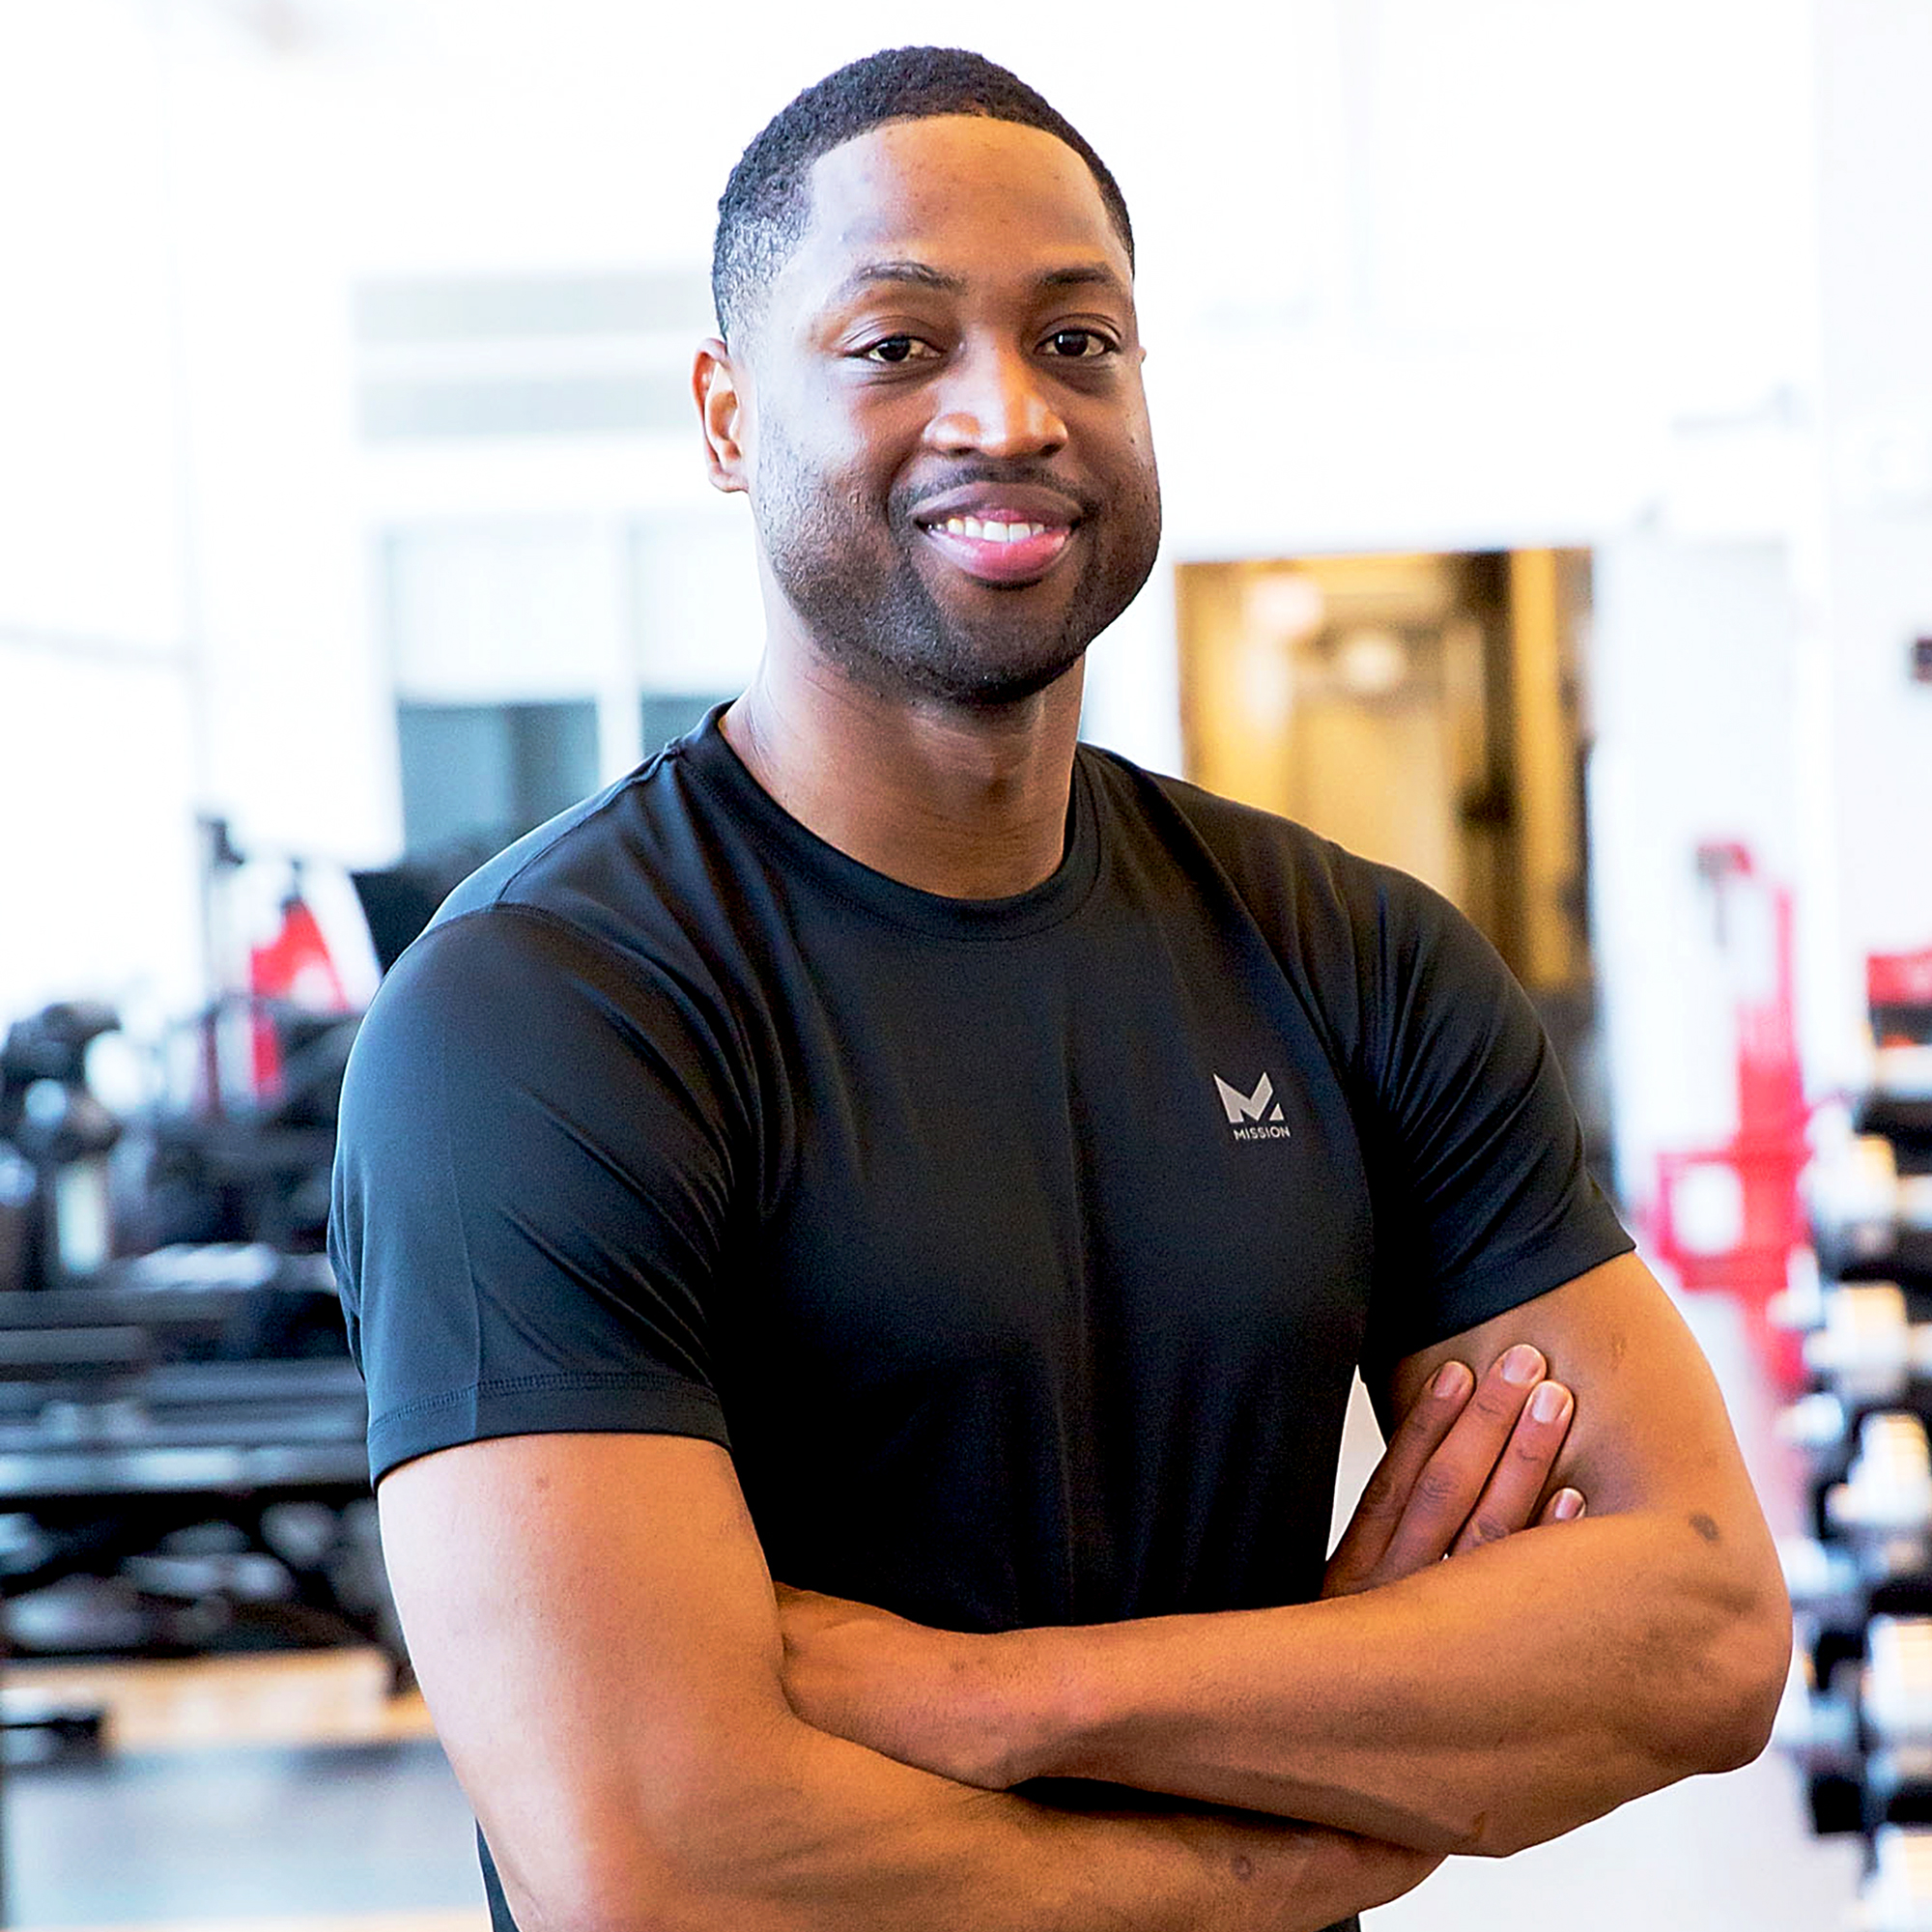 Dwyane Wade Workout: Dwyane Wade's New Puppy Is The Cutest Thing You'll See Today